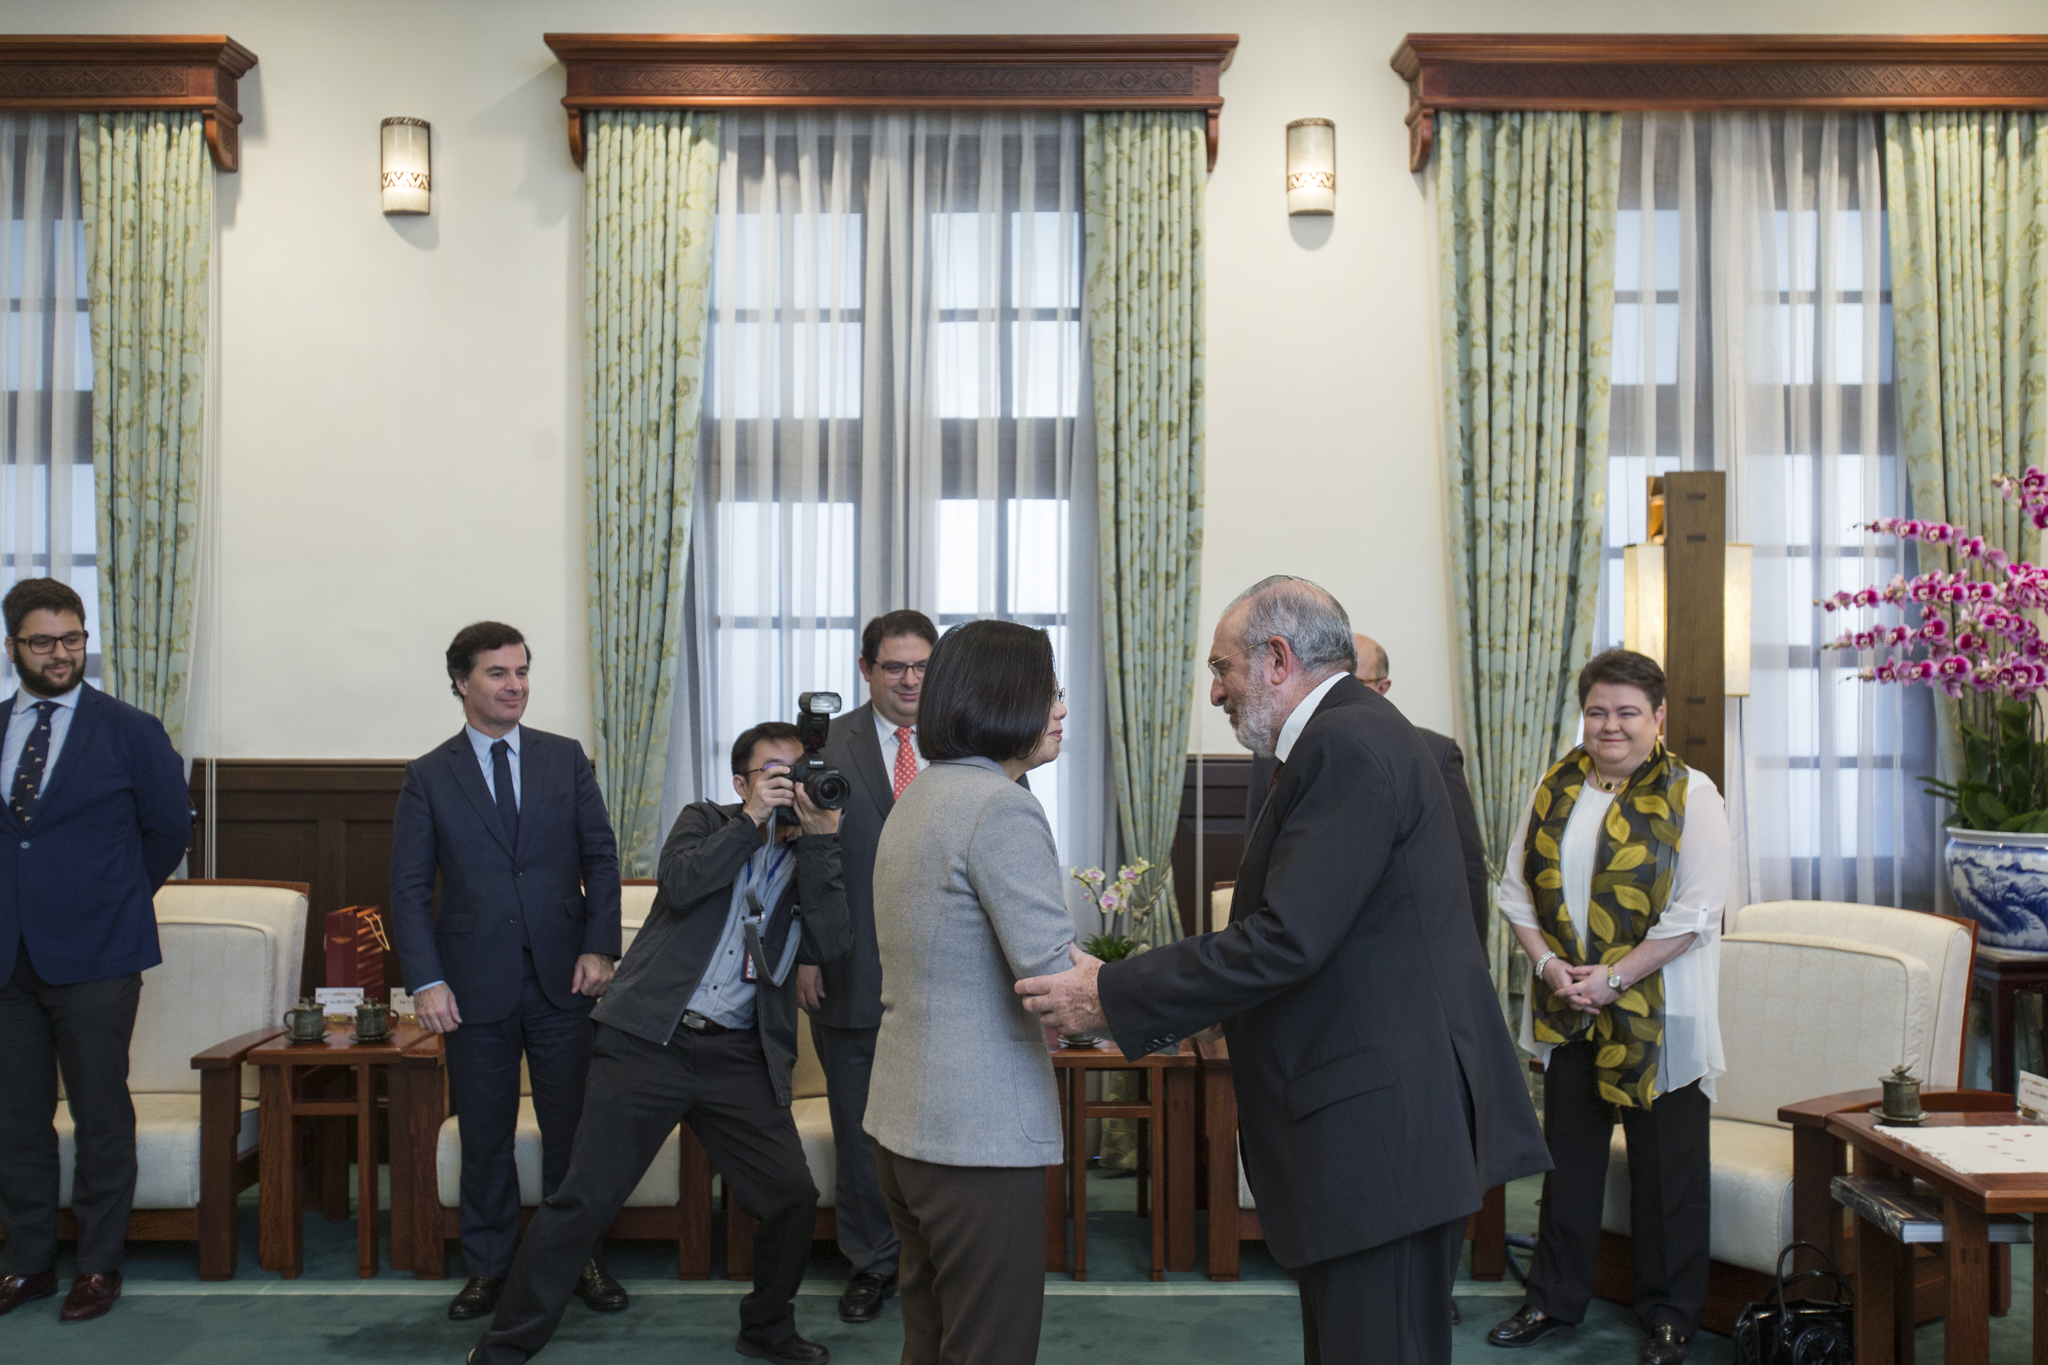 President Tsai shakes hands with a delegation from the European Parliament.